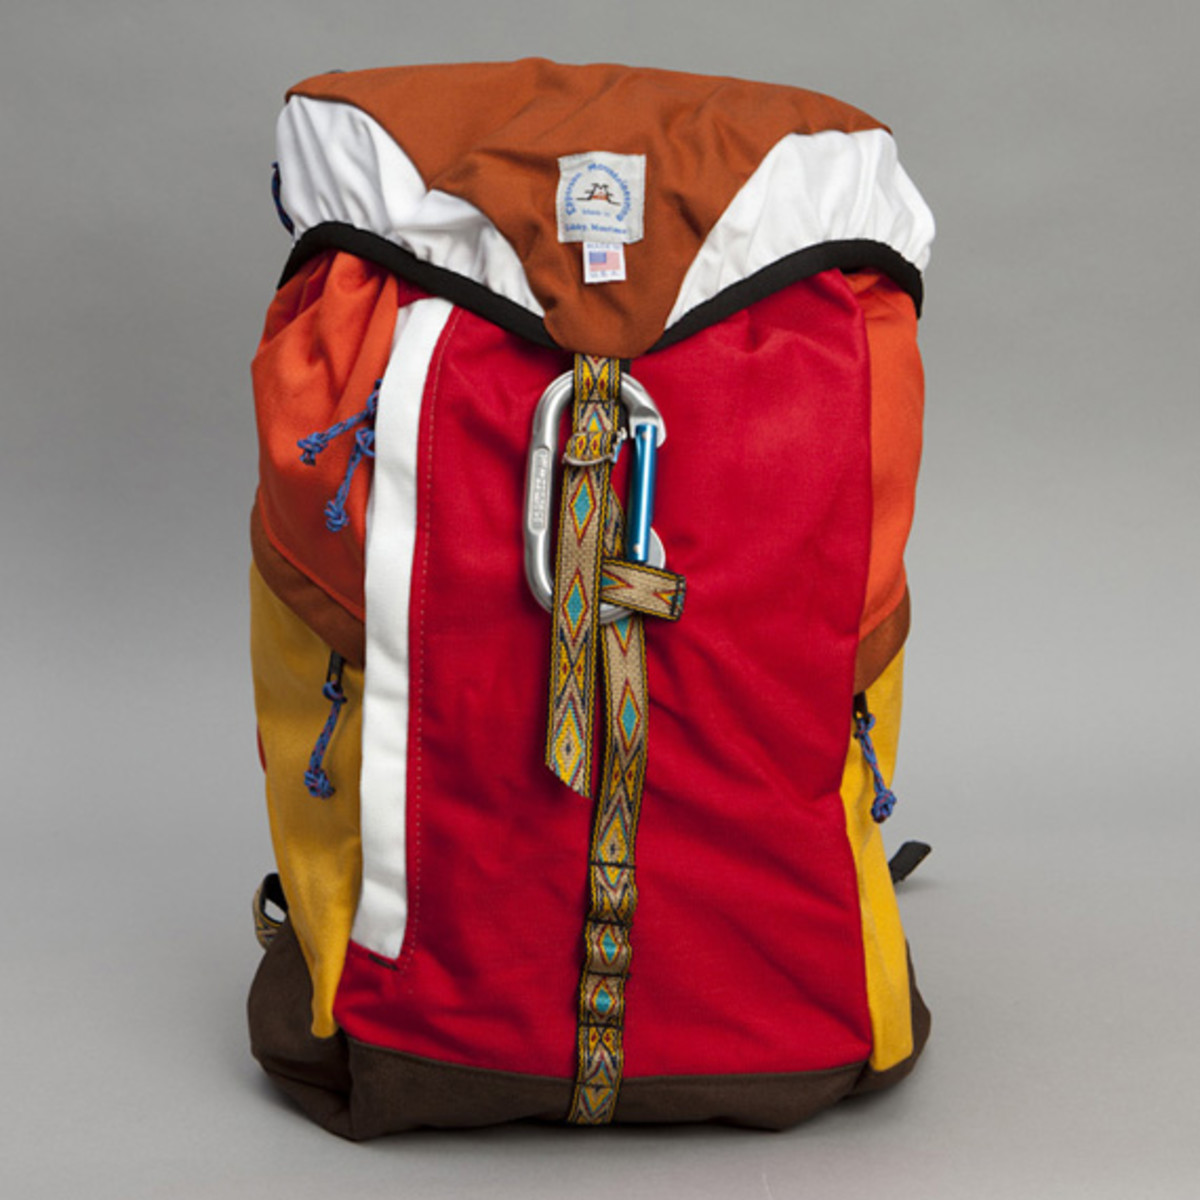 epperson-mountaineering-large-climb-pack-01